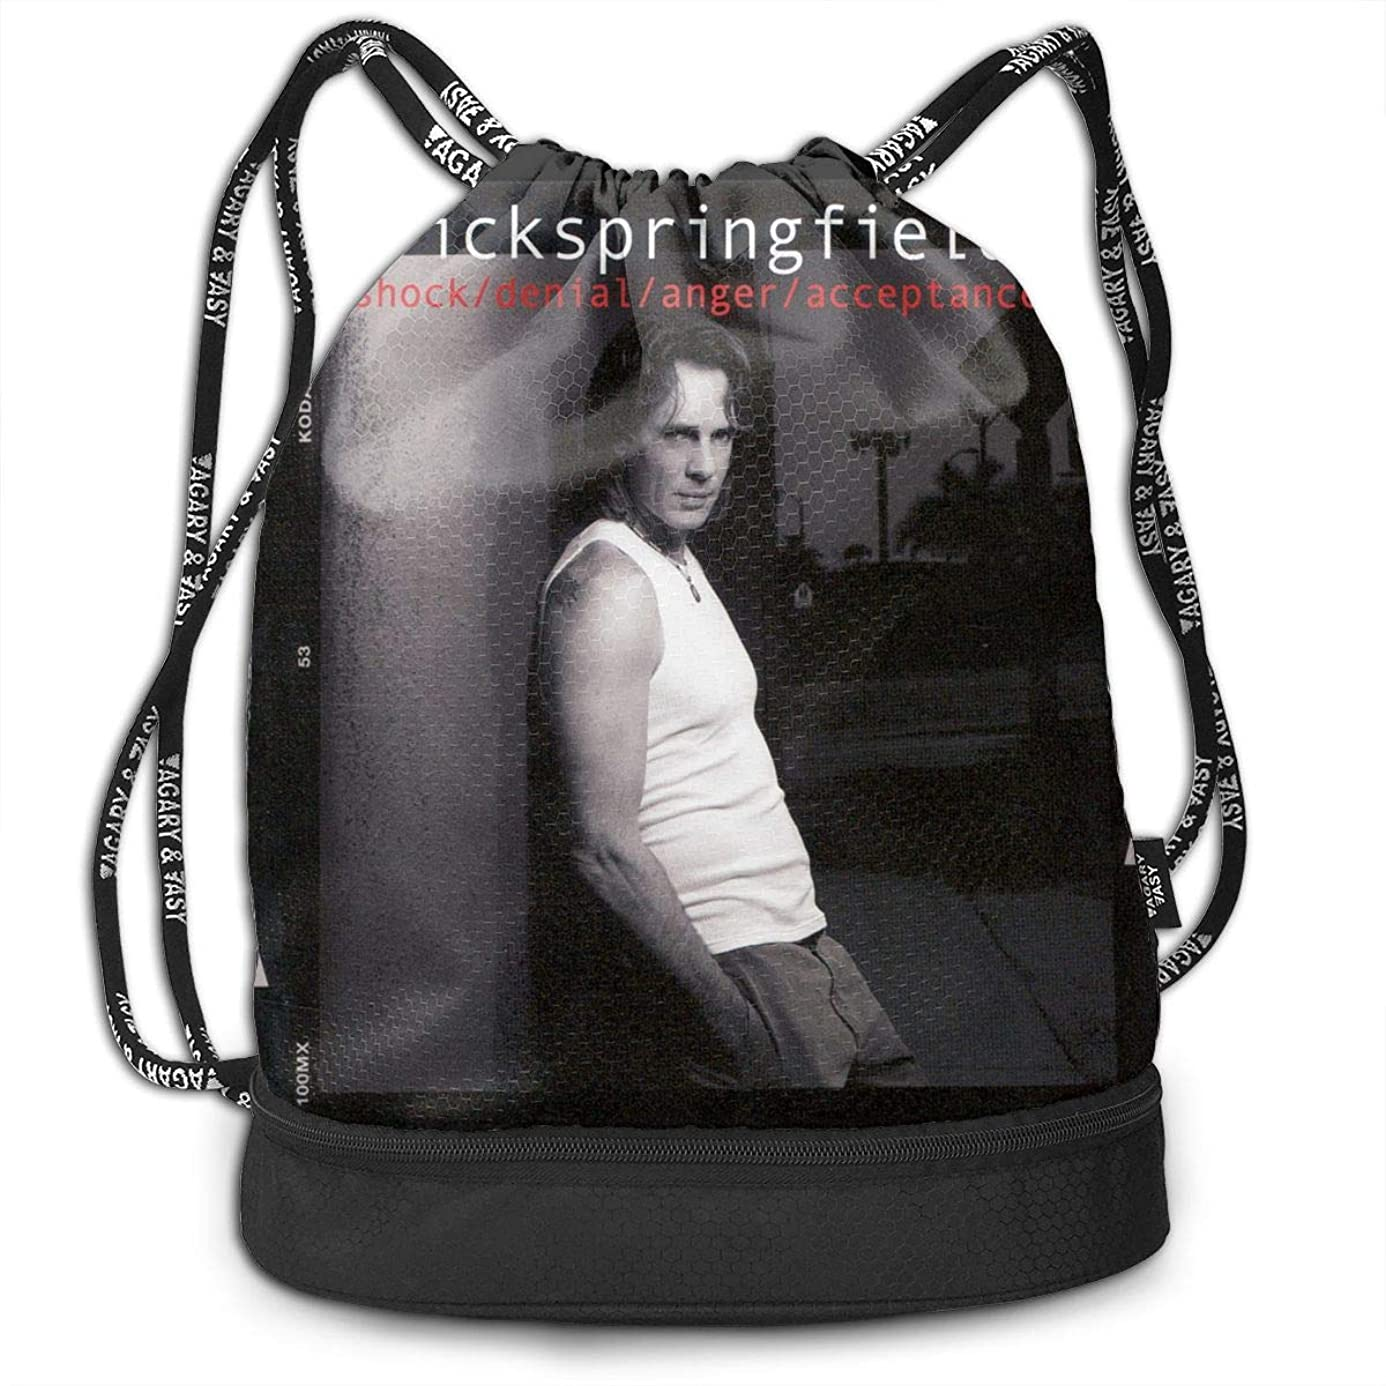 Fashion Outdoor Shopping Satchel Rucksack Backpack Bundle Pocket Drawstring Bag Daypack, Rick Springfield Shock Denial Anger